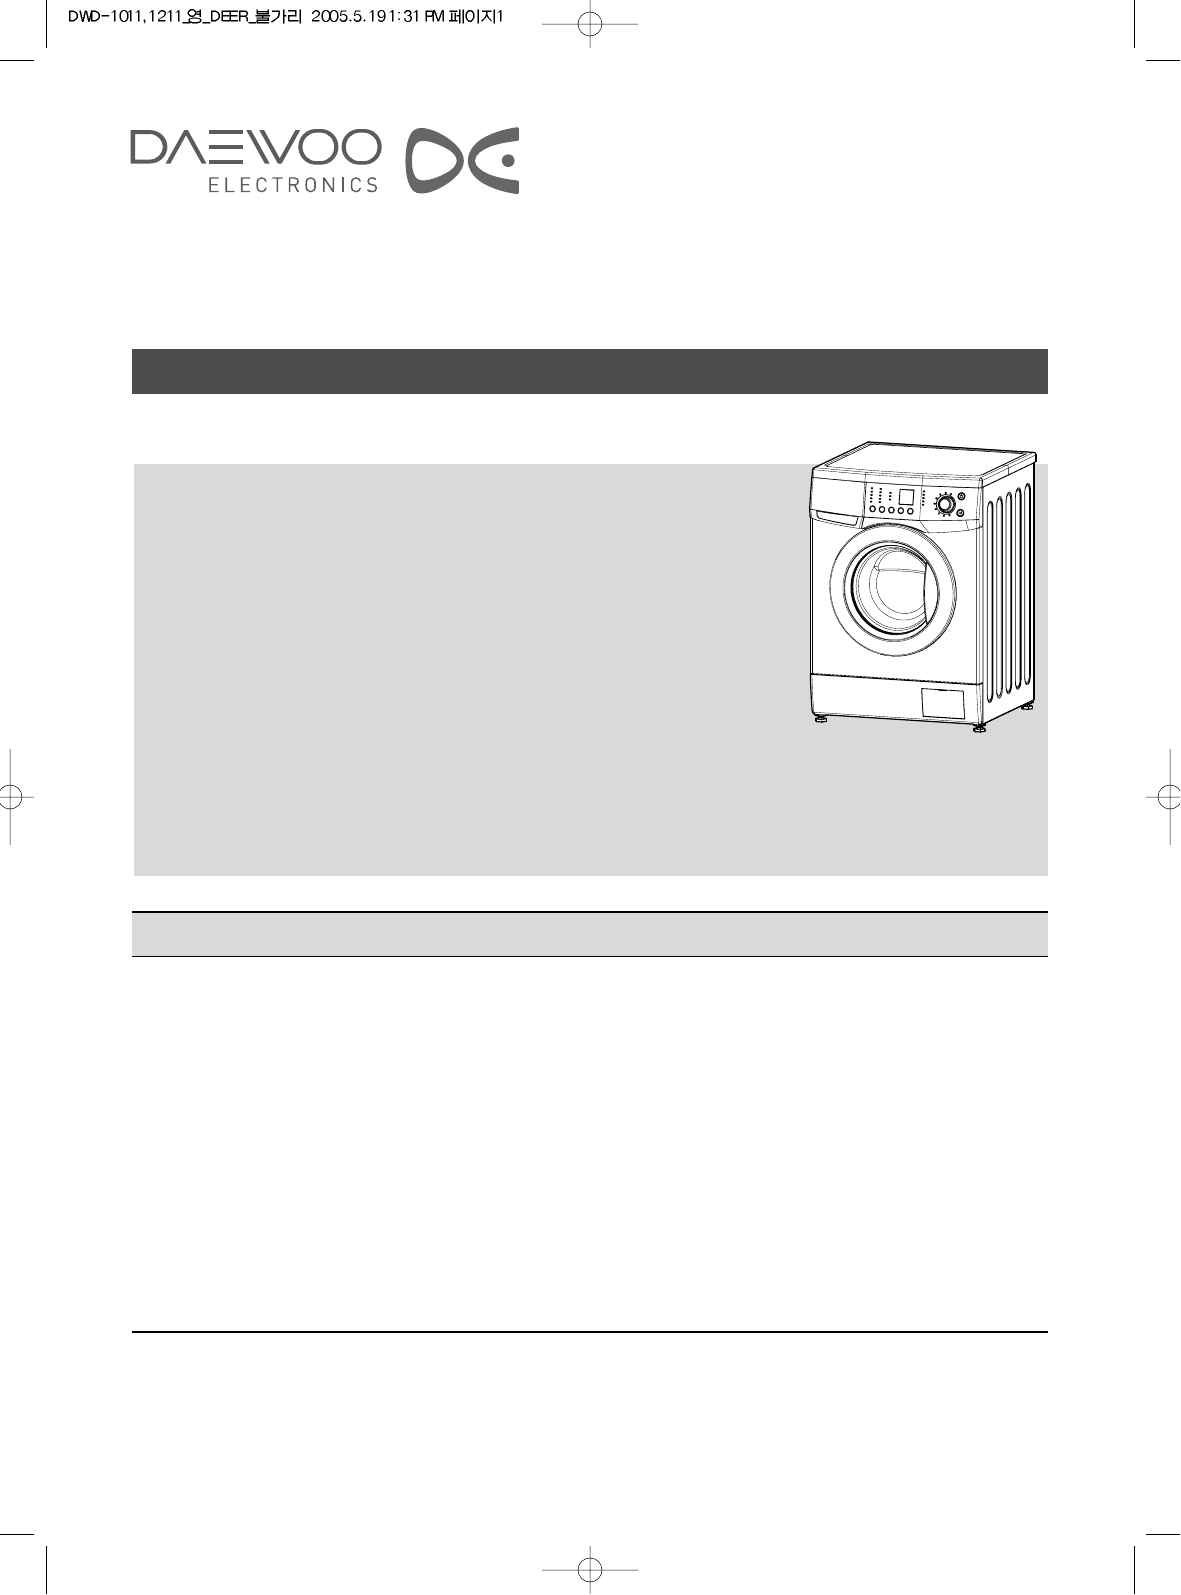 daewoo washer dryer 1013 user guide manualsonline com rh laundry manualsonline com Washer and Dryer Daewoo Dryer Not Heating